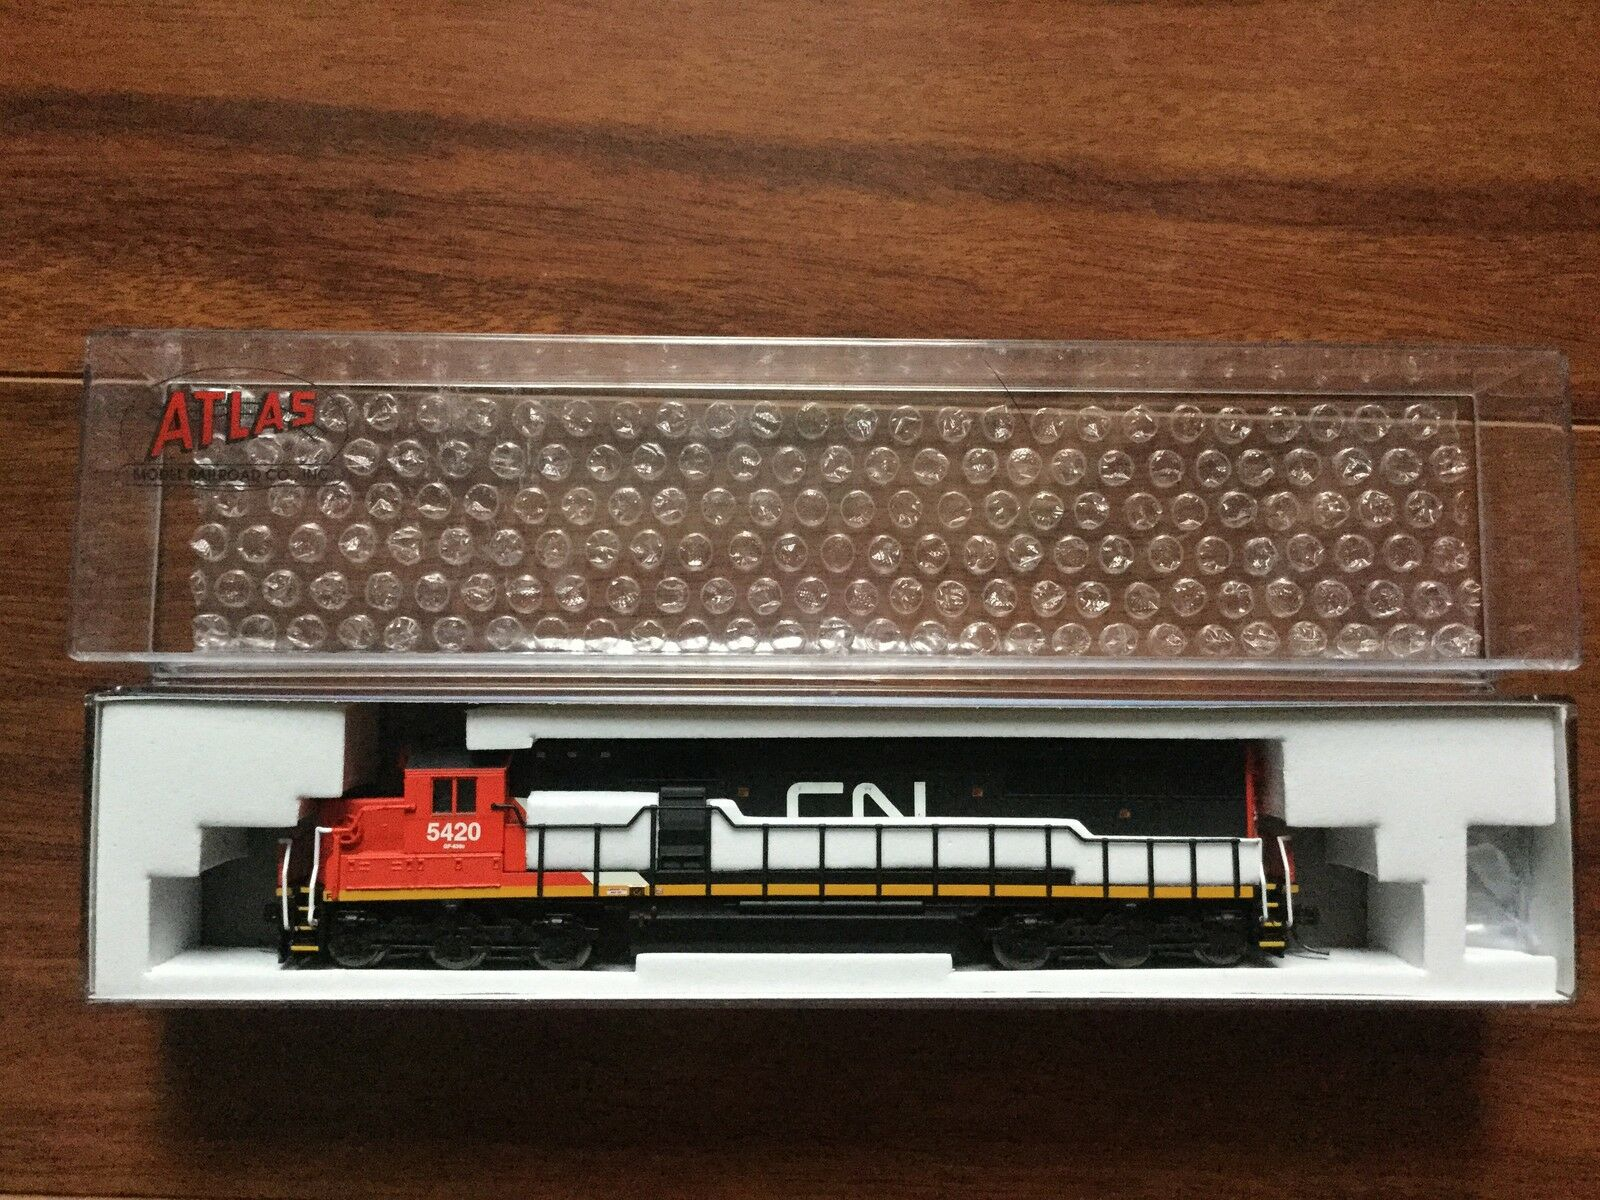 ATLAS 1 160 N Scale  SD-60 Canadian National Rd  5420 NCE for DCC   40002061 F S